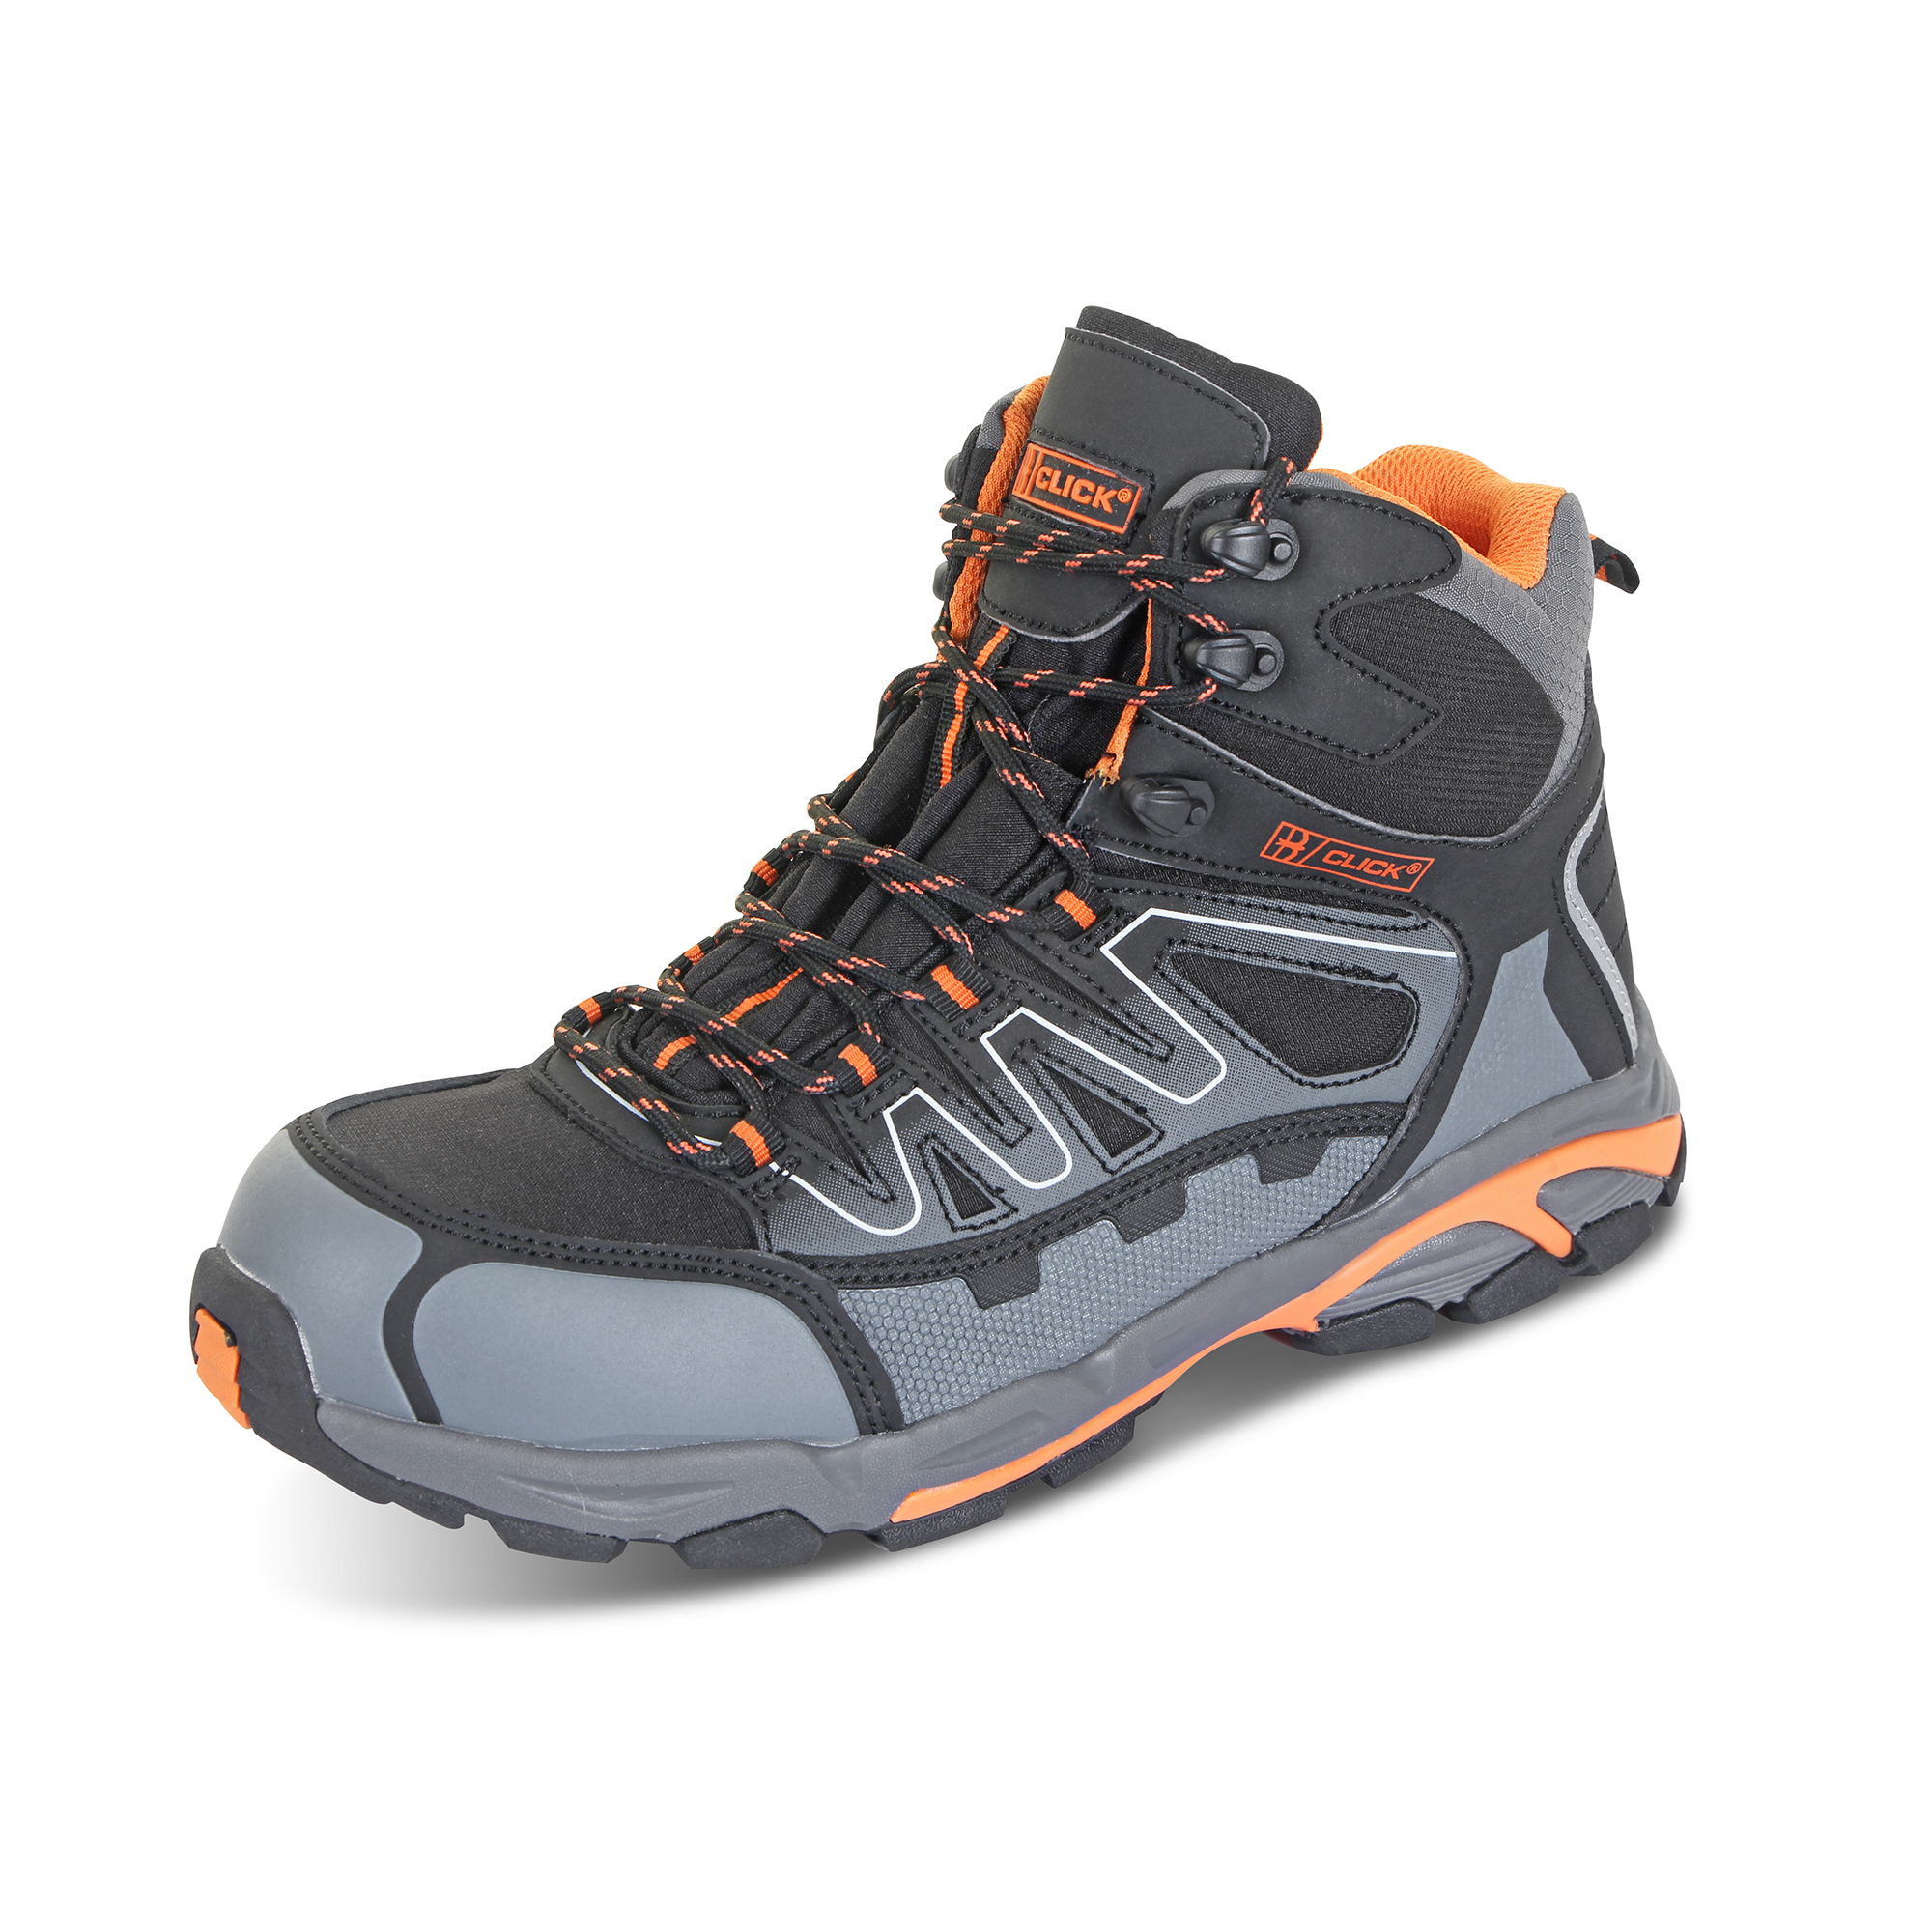 Limitless Click Footwear Leather S3 Hiker Boot Composite Toe Size 10 Black/Grey Ref CF3510 *Up to 3 Day Leadtime*